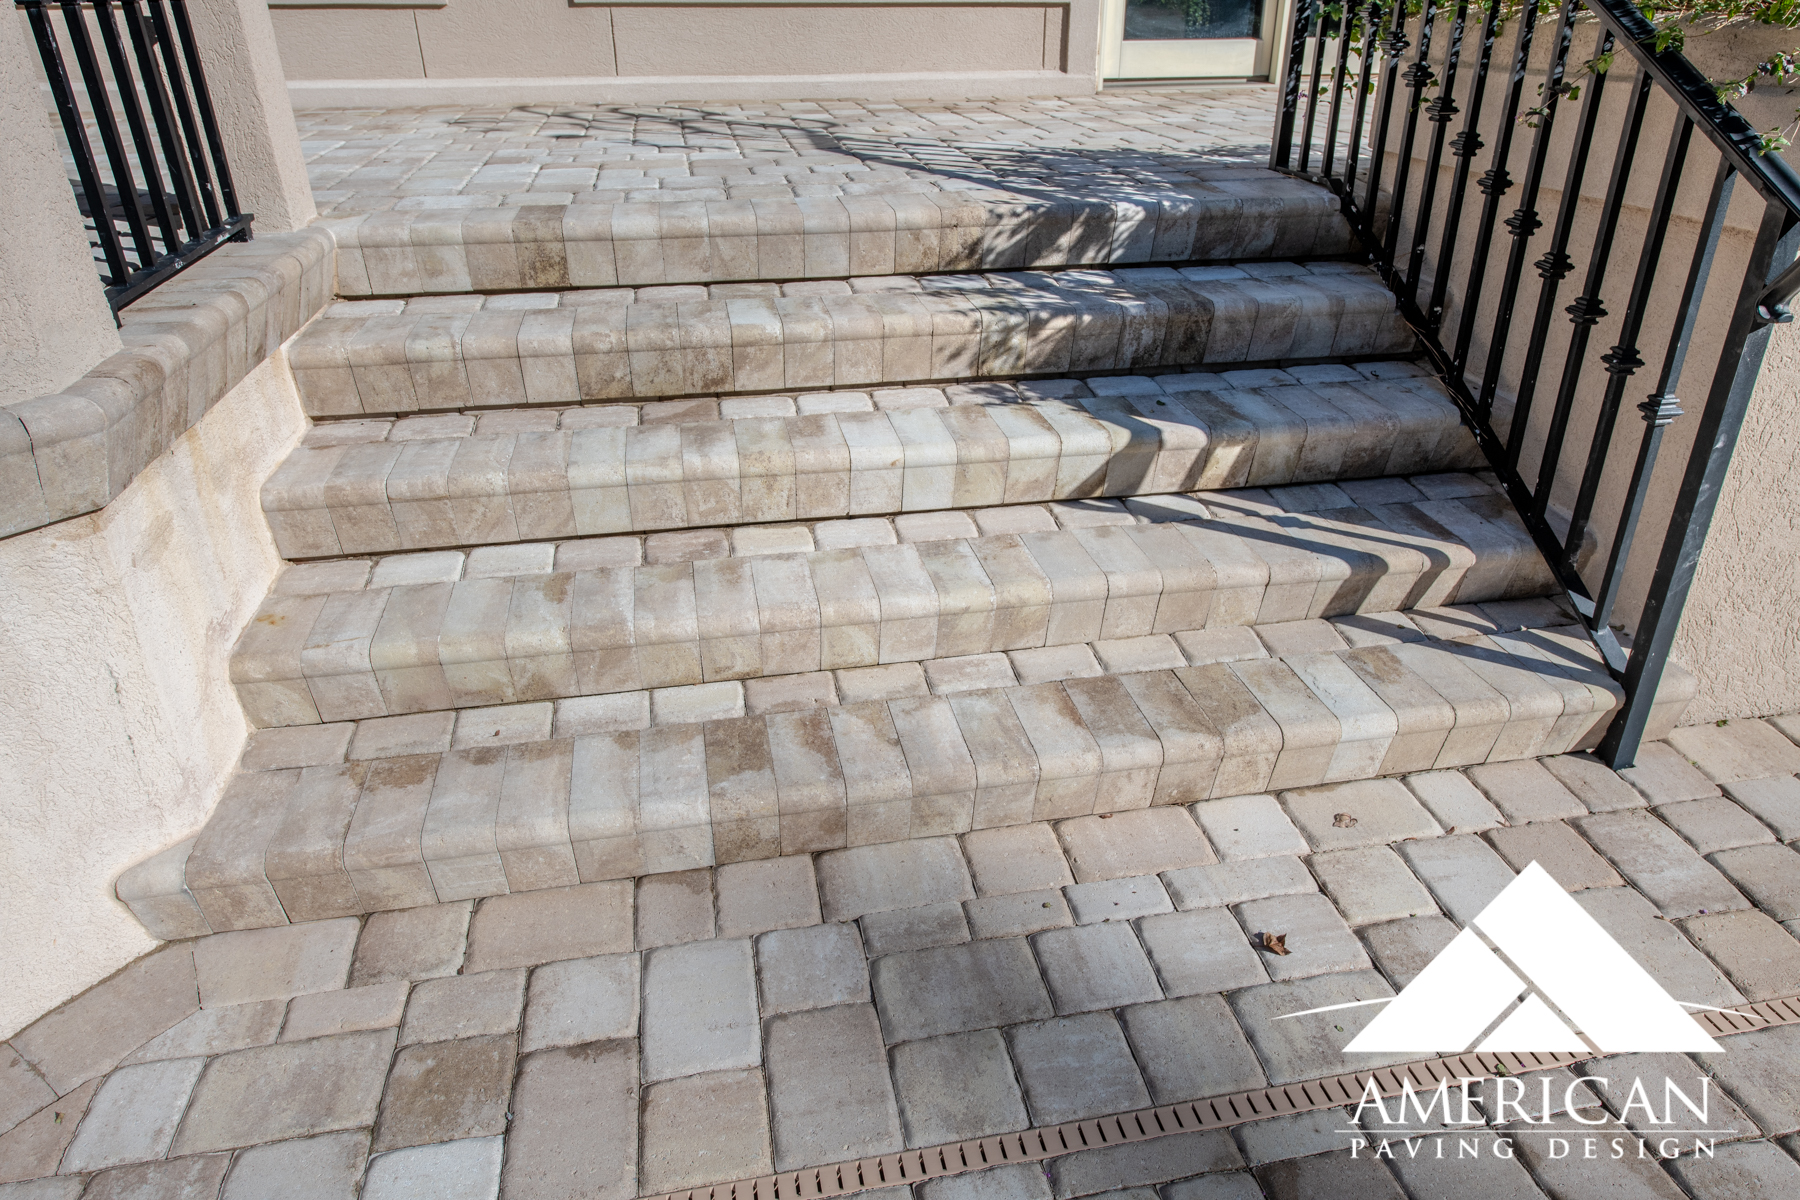 Installing Brick Paver Steps Around Your Outside Porch Makes Transitioning From The Patio To the Pool Deck Much Easier!